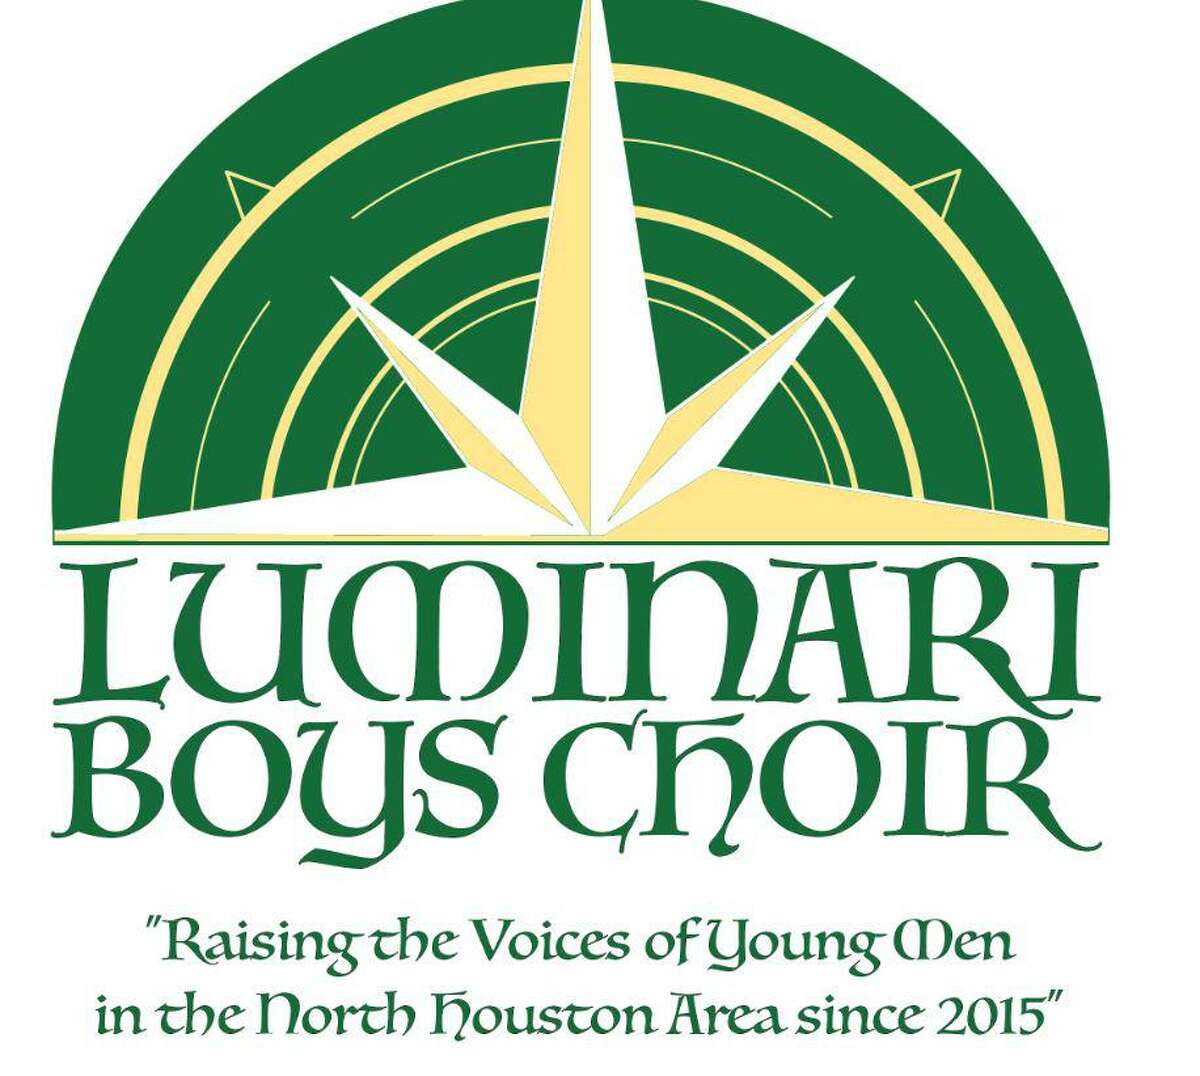 Officials with The Woodlands Boys Choir have announced that the organization is changing its name in an effort to expand offerings and attract new members from a wider geographic area. The choir, founded in 2015, will now be called the Luminari Boys Choir. The choir is also relocating from its homebase in The Woodlands to a church on Louetta Road in Spring.